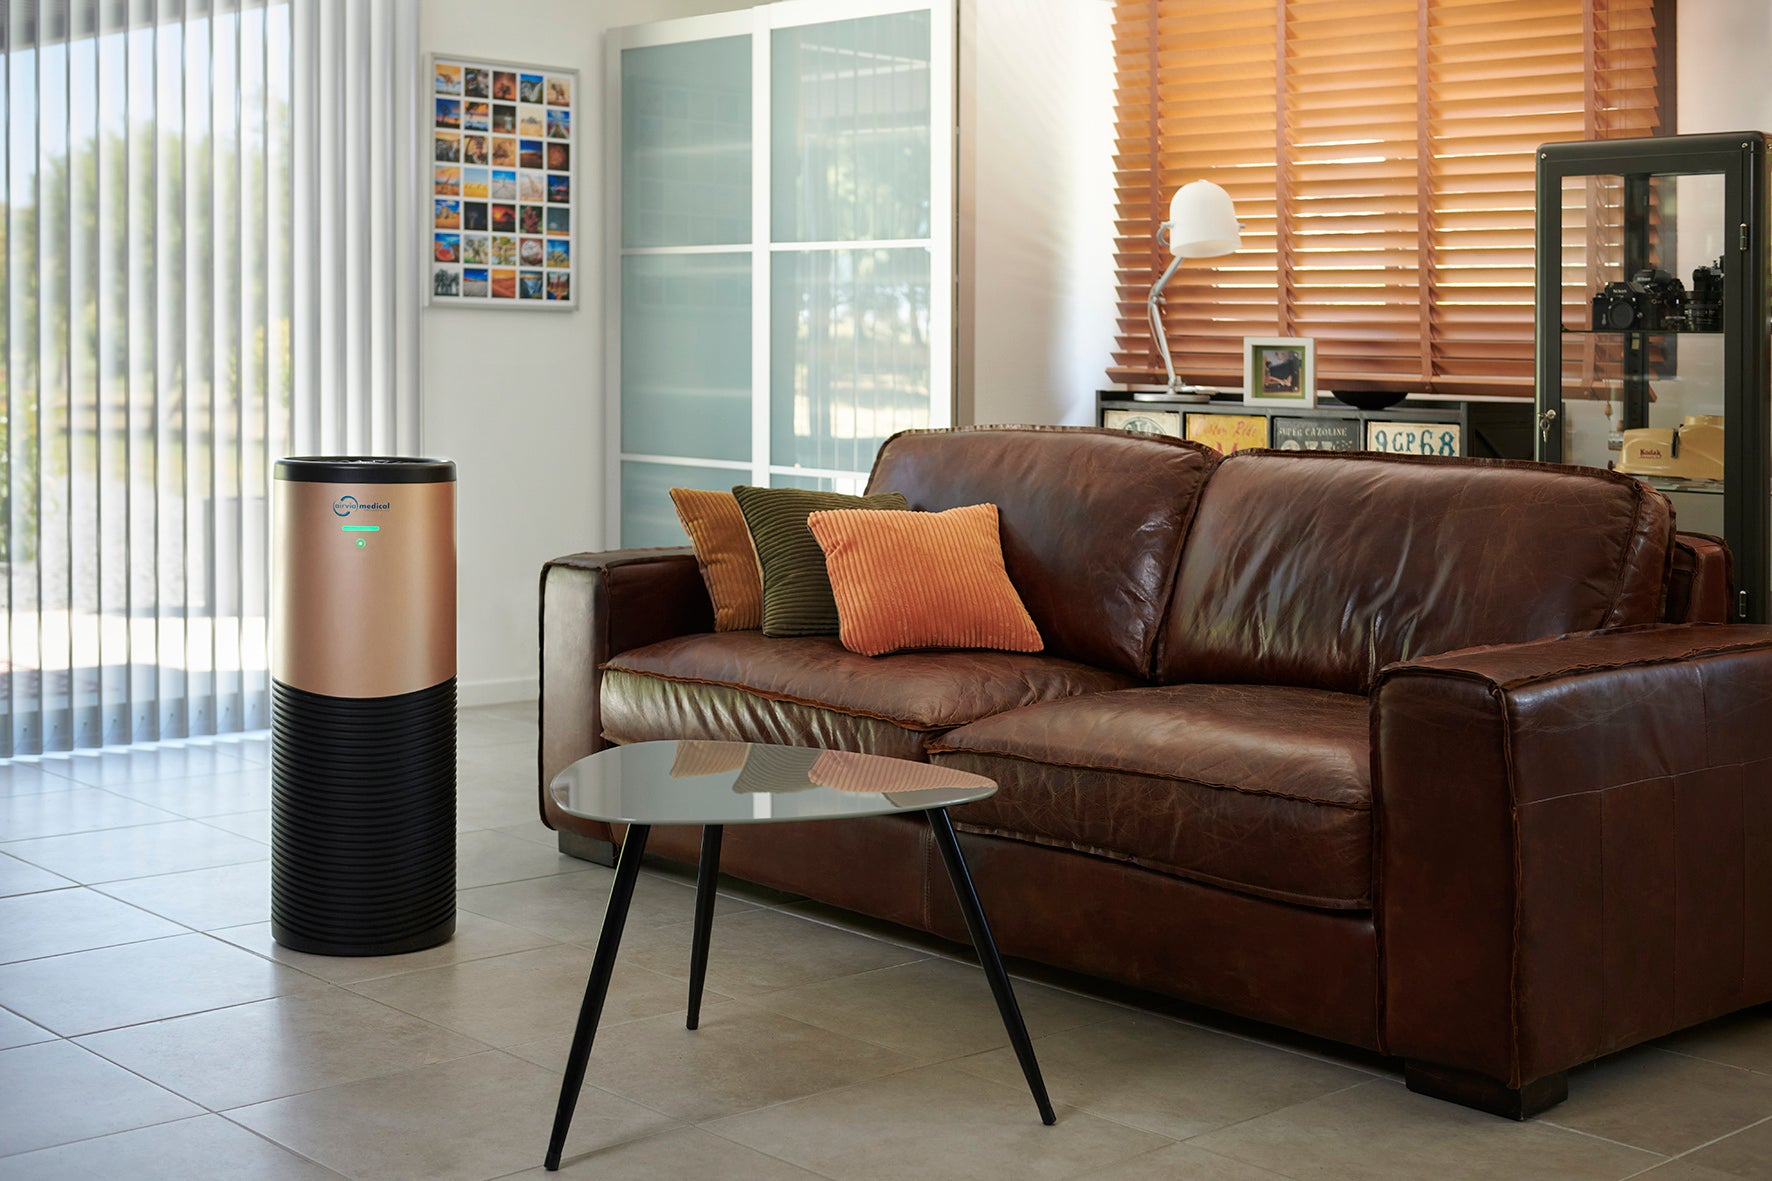 AIRVIA PRO 150 air purifier in a living room